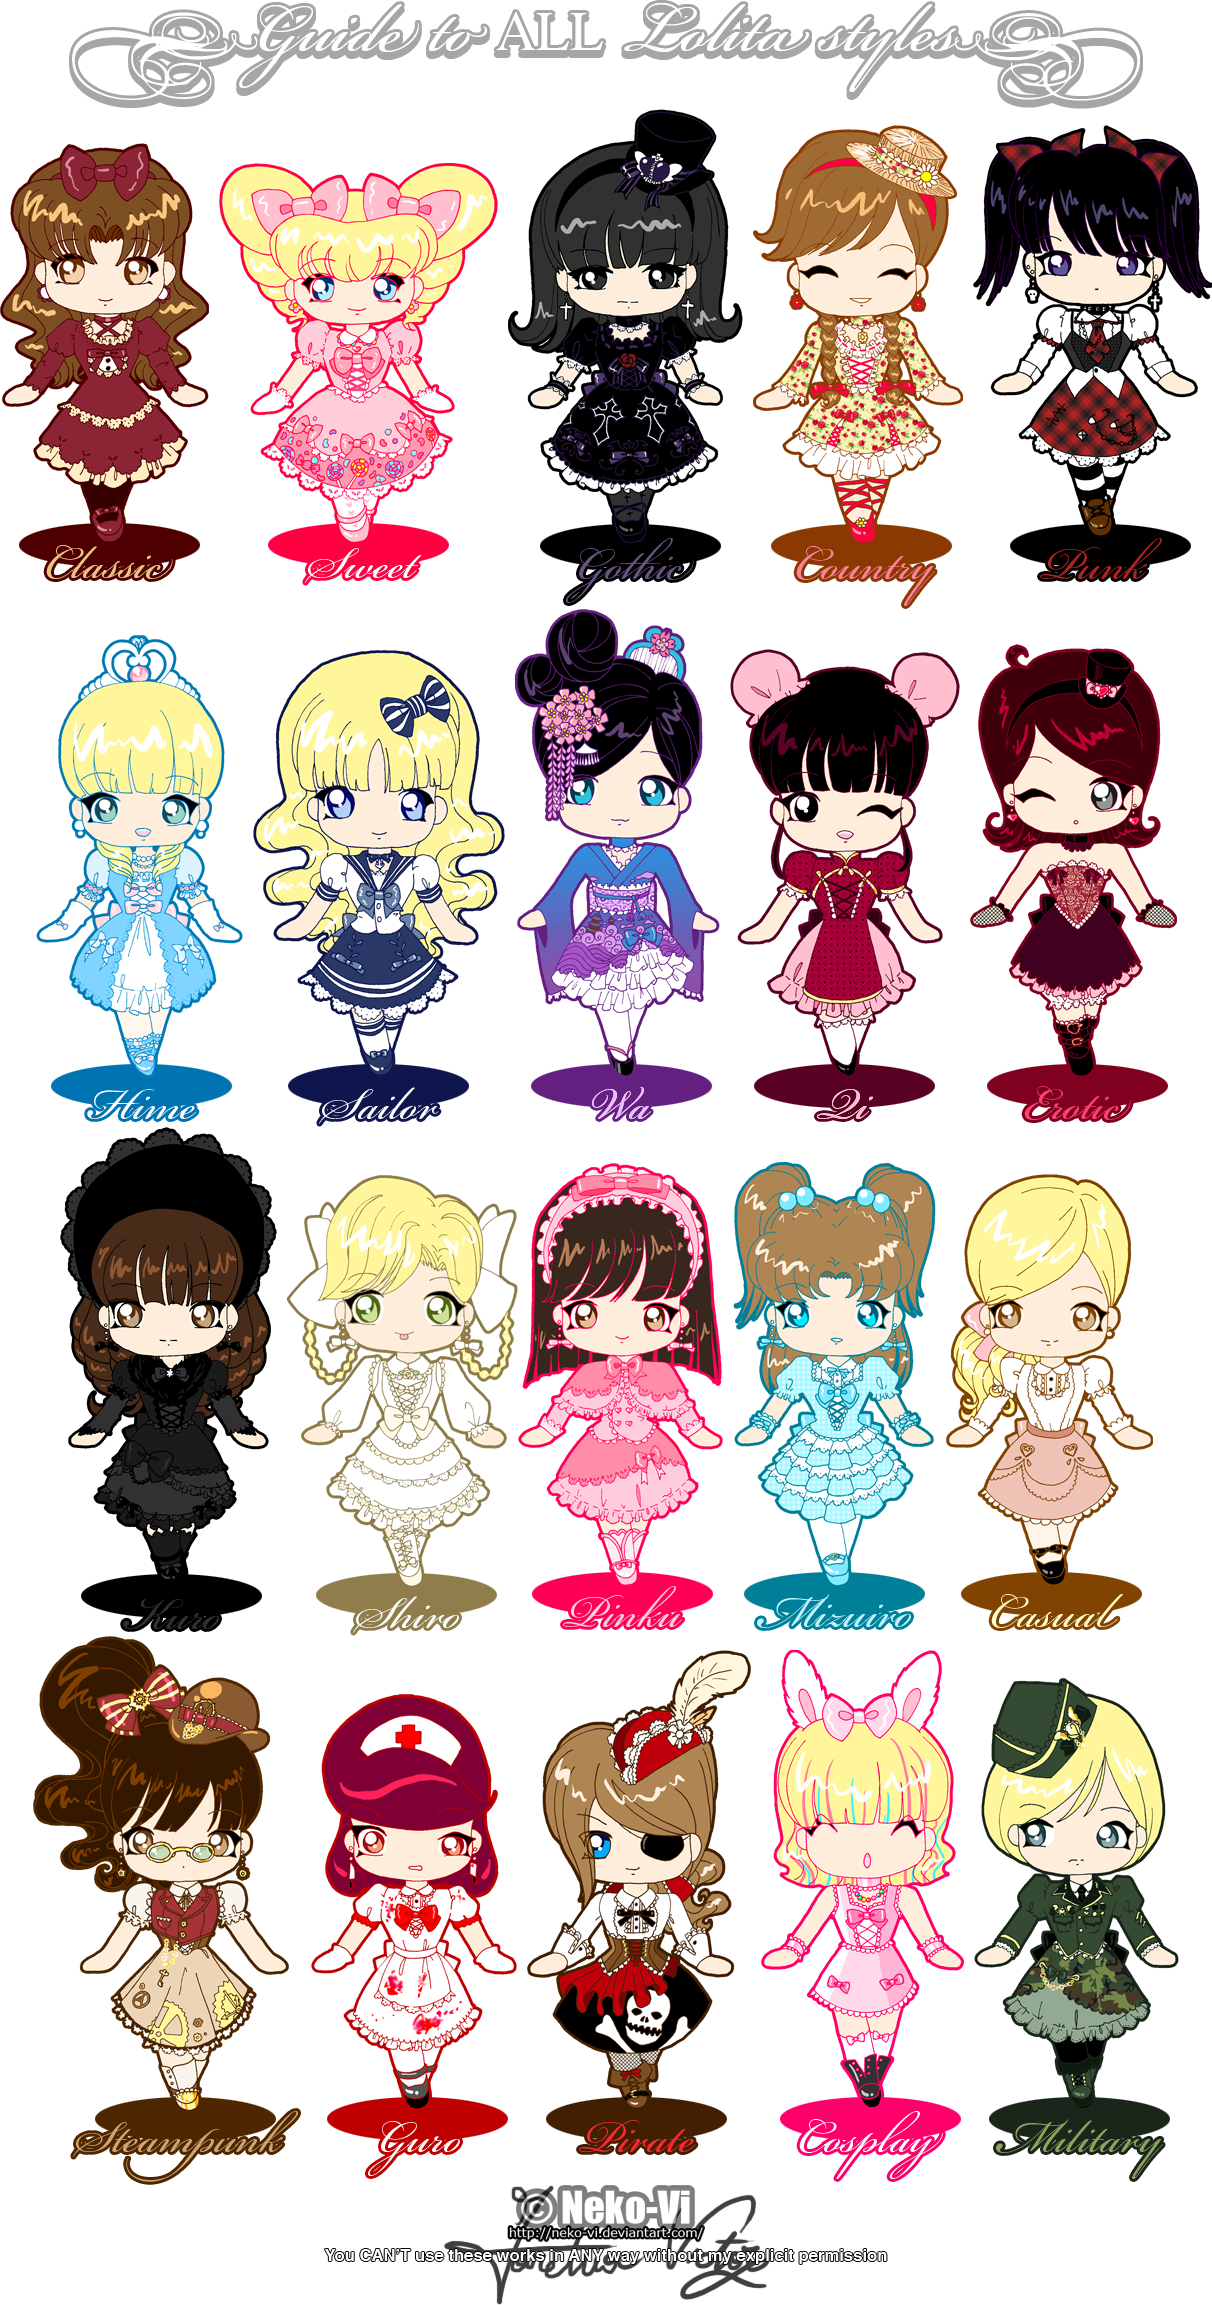 Maid clipart yaya. Guide to all lolita